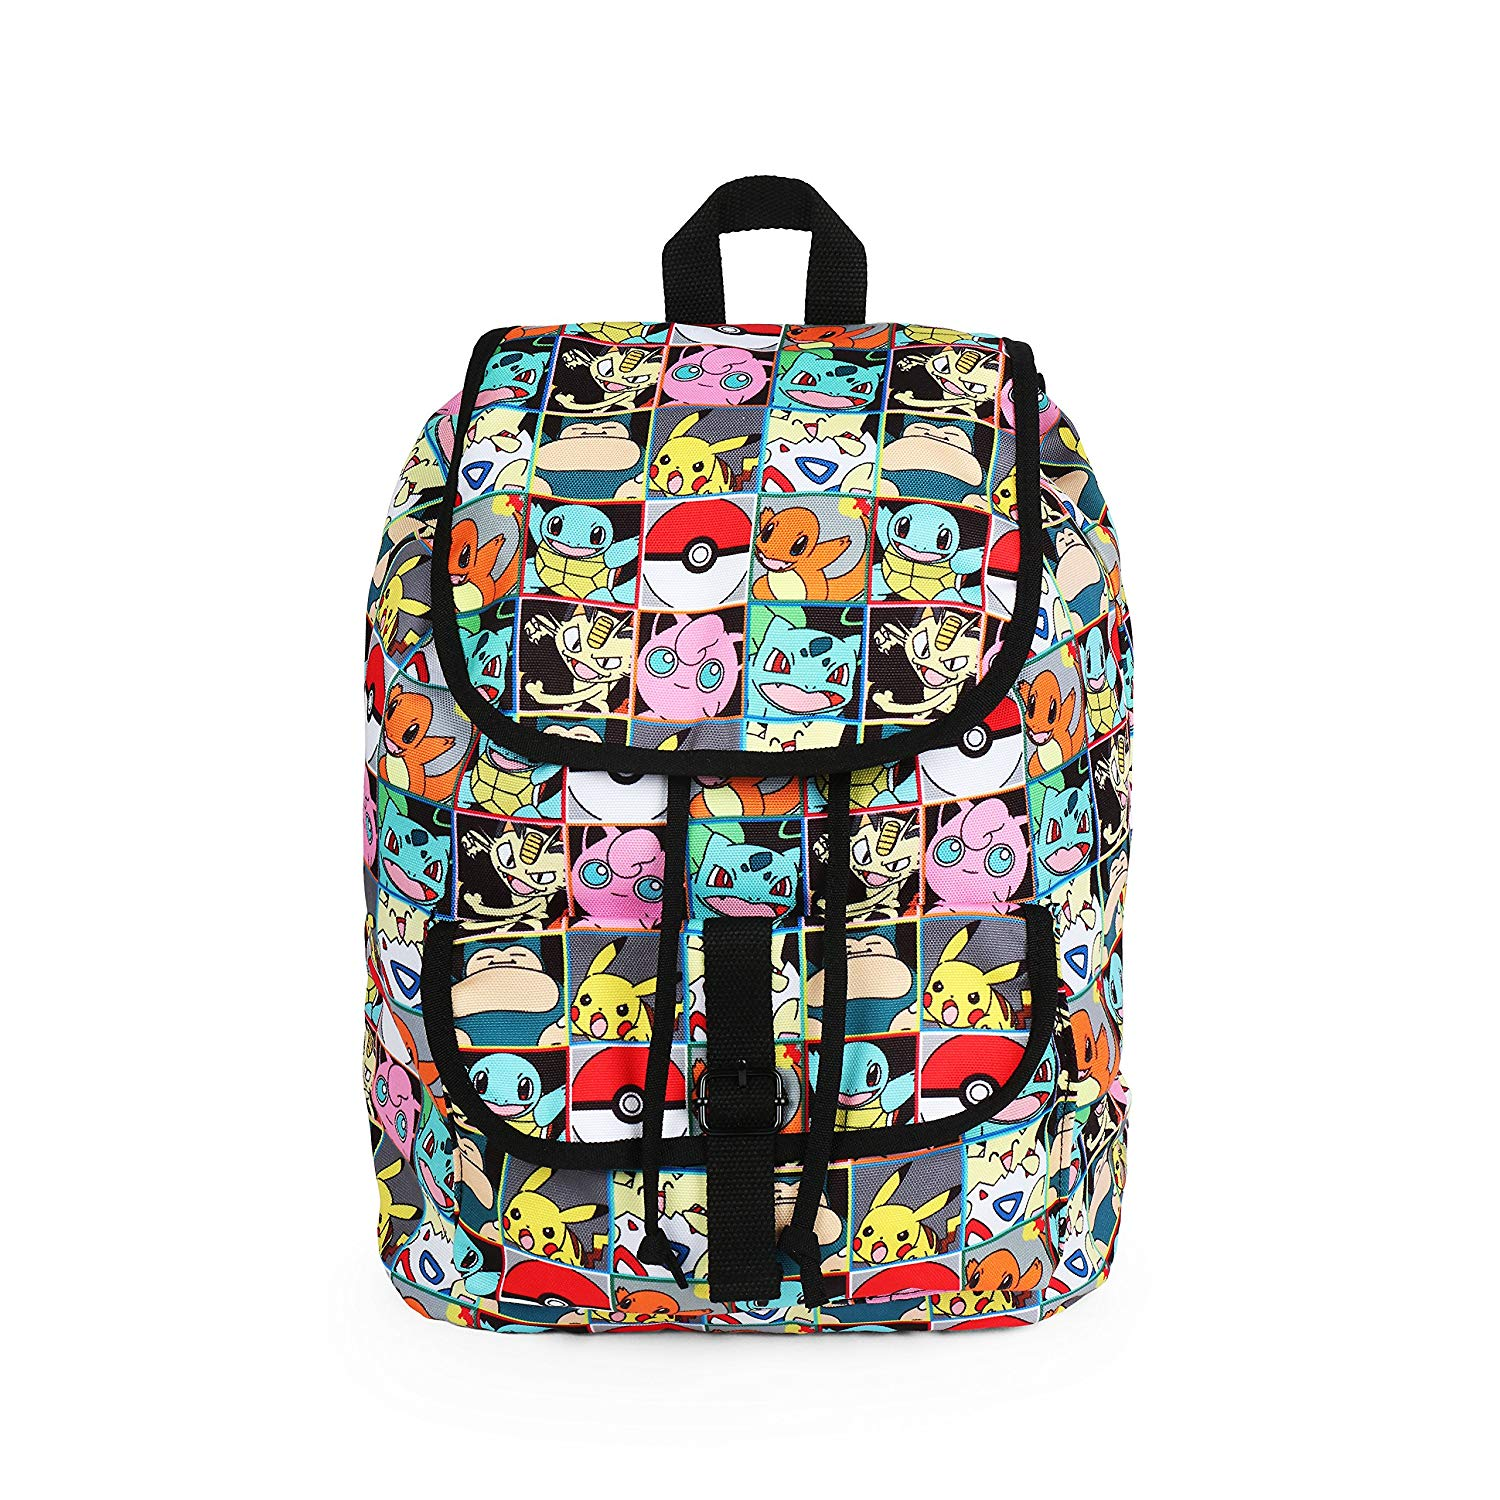 cca1a5238793 Get Quotations · Pokemon All Over Print Pikachu and Characters Checkered Rucksack  Backpack School Bag